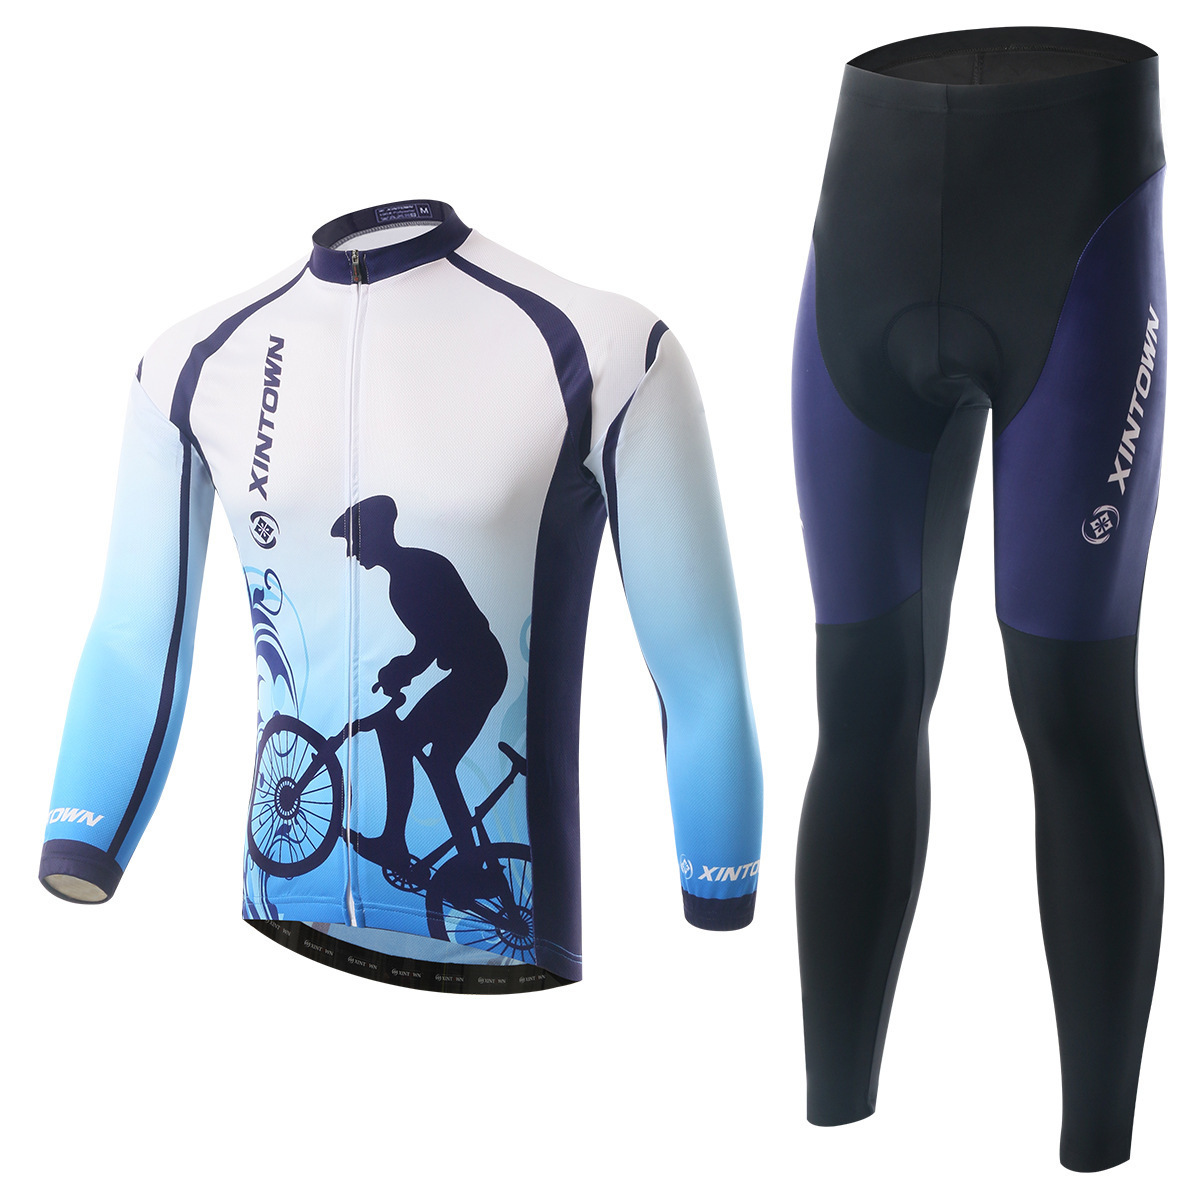 BOODUN Wang Yue Riding Clothes Long Sleeve Bicycle Serve Catch Down Windbreak Keep Warm Function Underwear